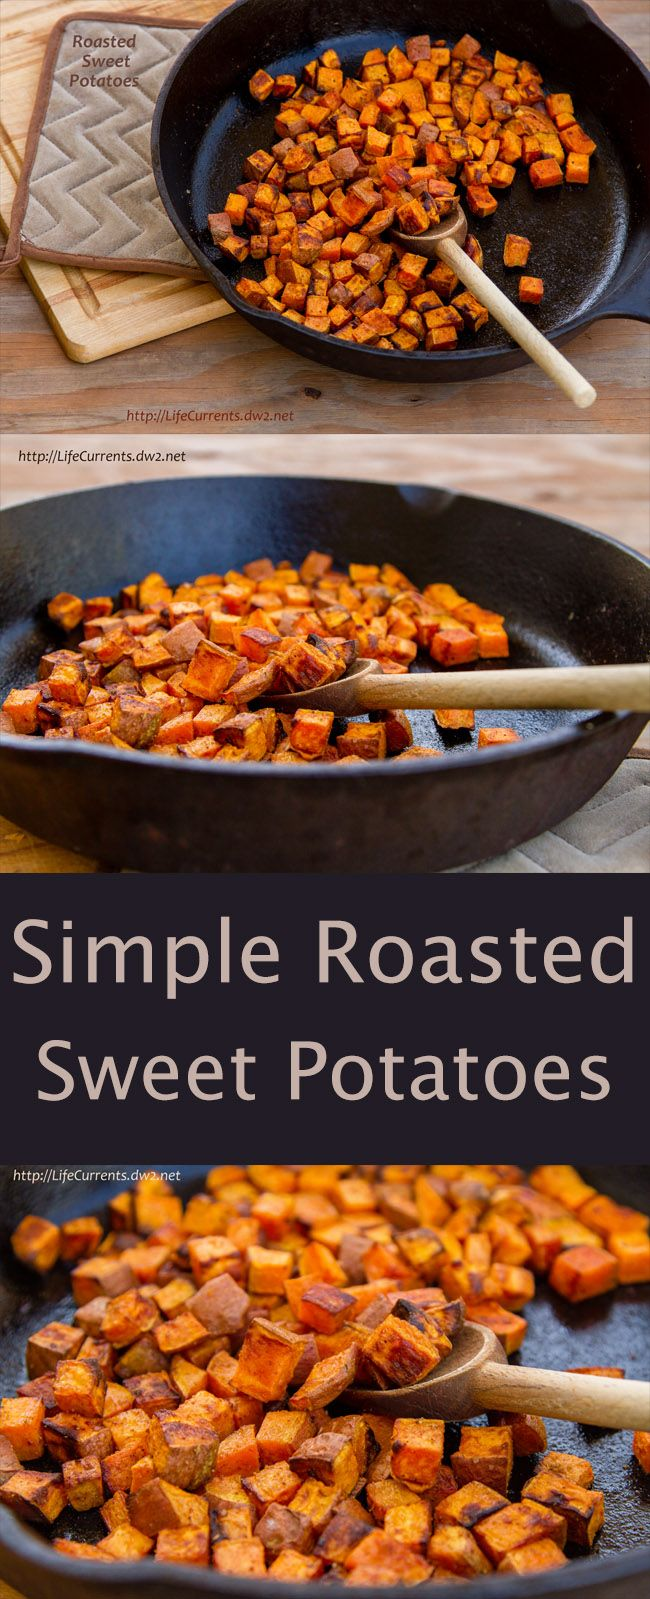 Roasted Sweet Potatoes are an easy side dish to make, and so versatile. Use them in a taco, or with eggs for breakfast. Toss them in a salad. Or eat them straight from the pan!